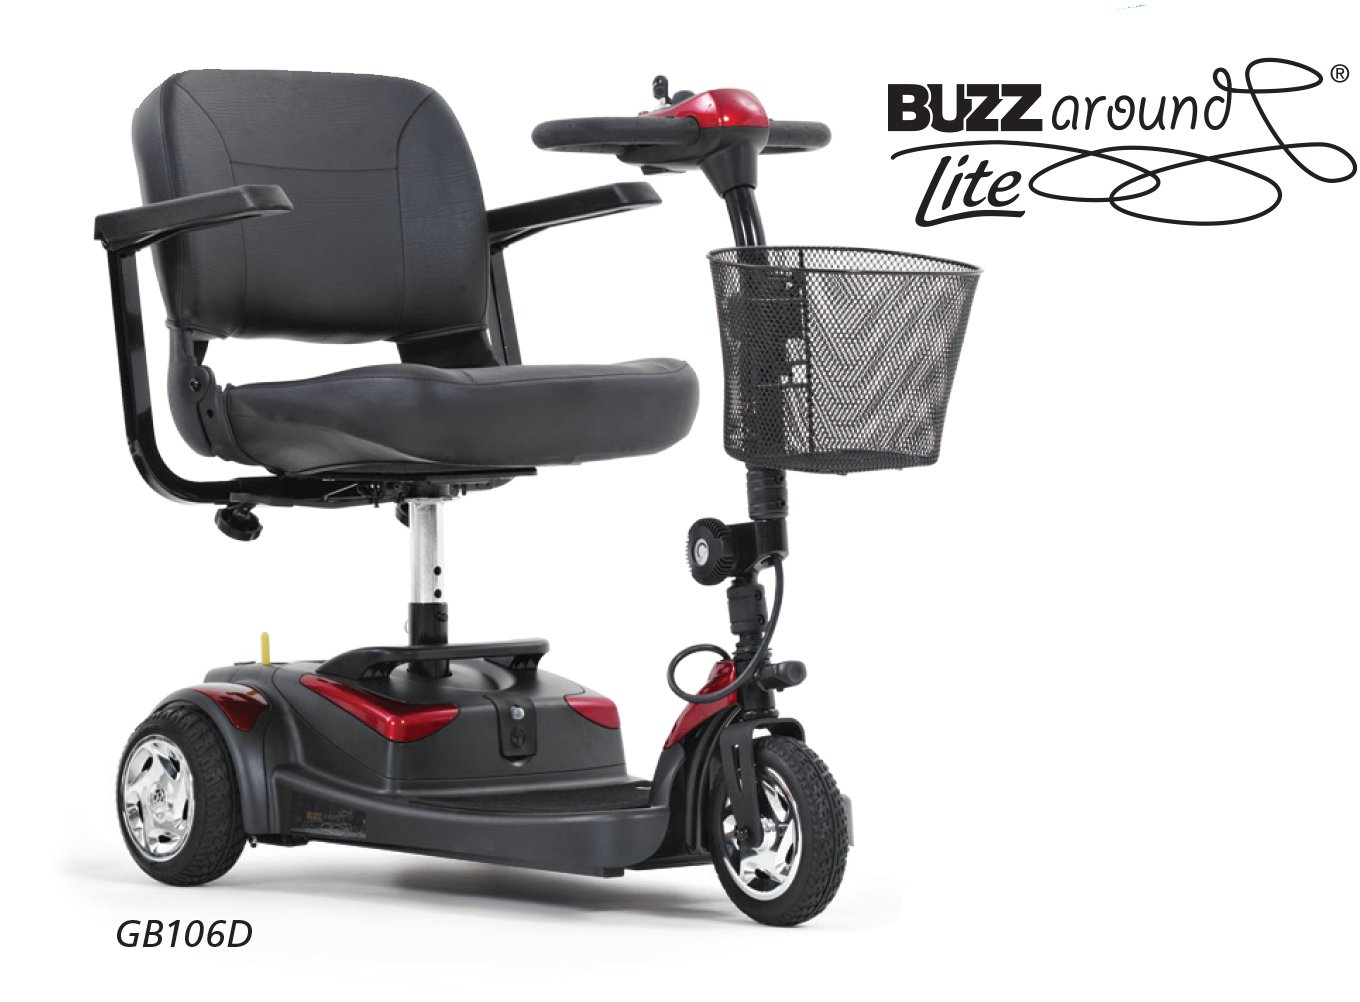 Buzzaround Lite 3 Wheel Mobility Scooter - PHILLIPS POWER PACKAGE TM - TO $500 VALUE